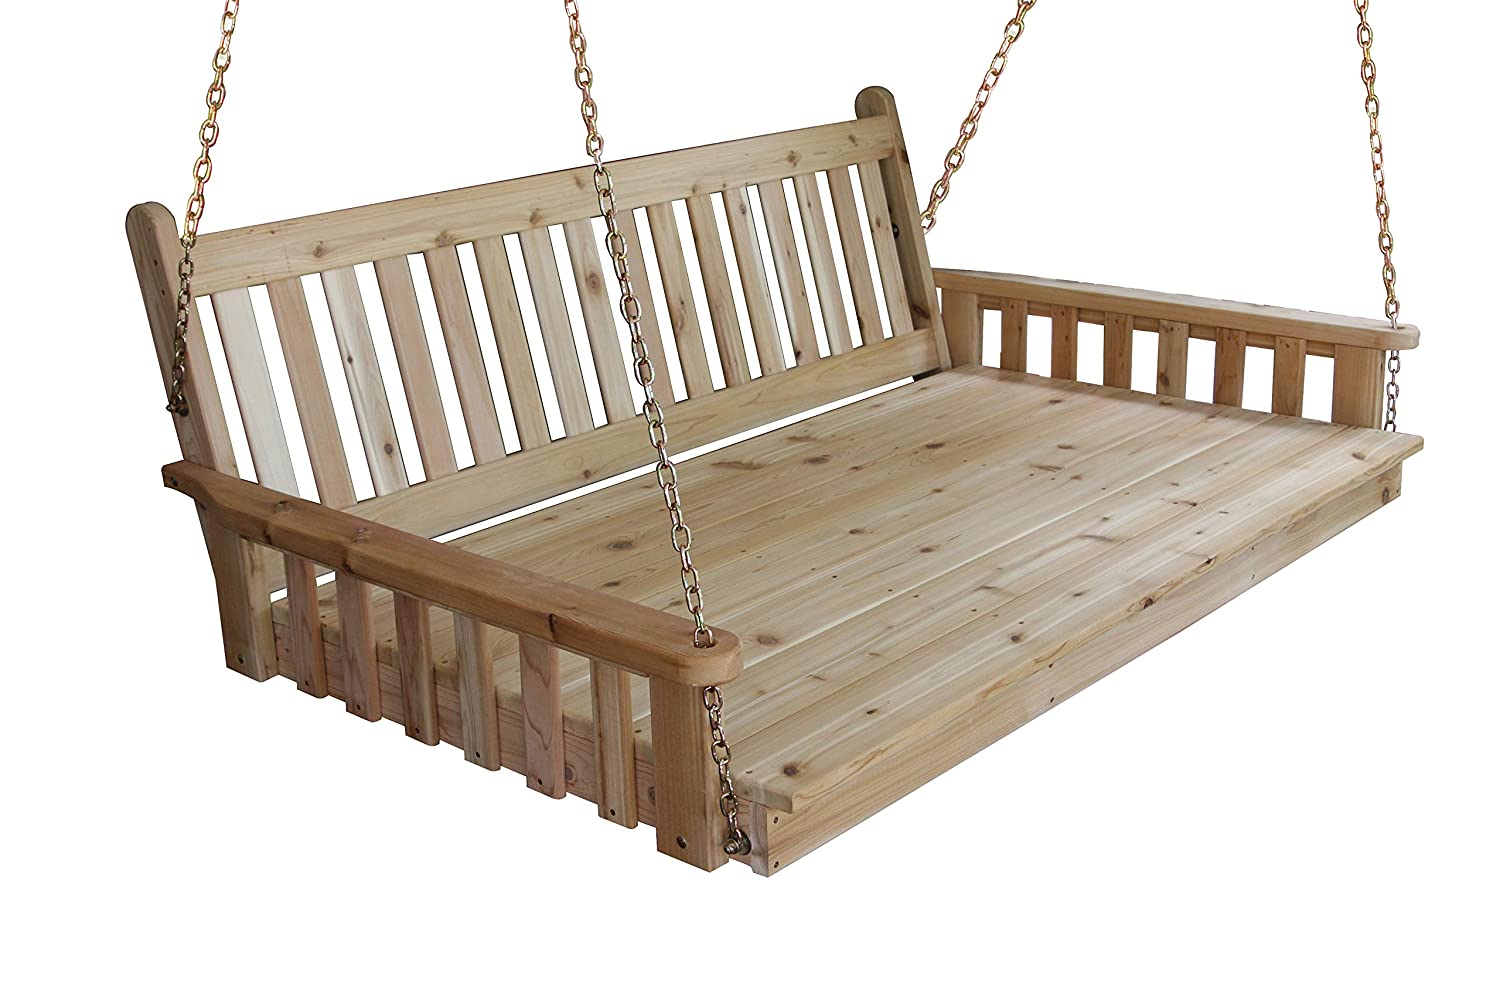 BEST HANGING PORCH SWING BED SWINGBED, 6